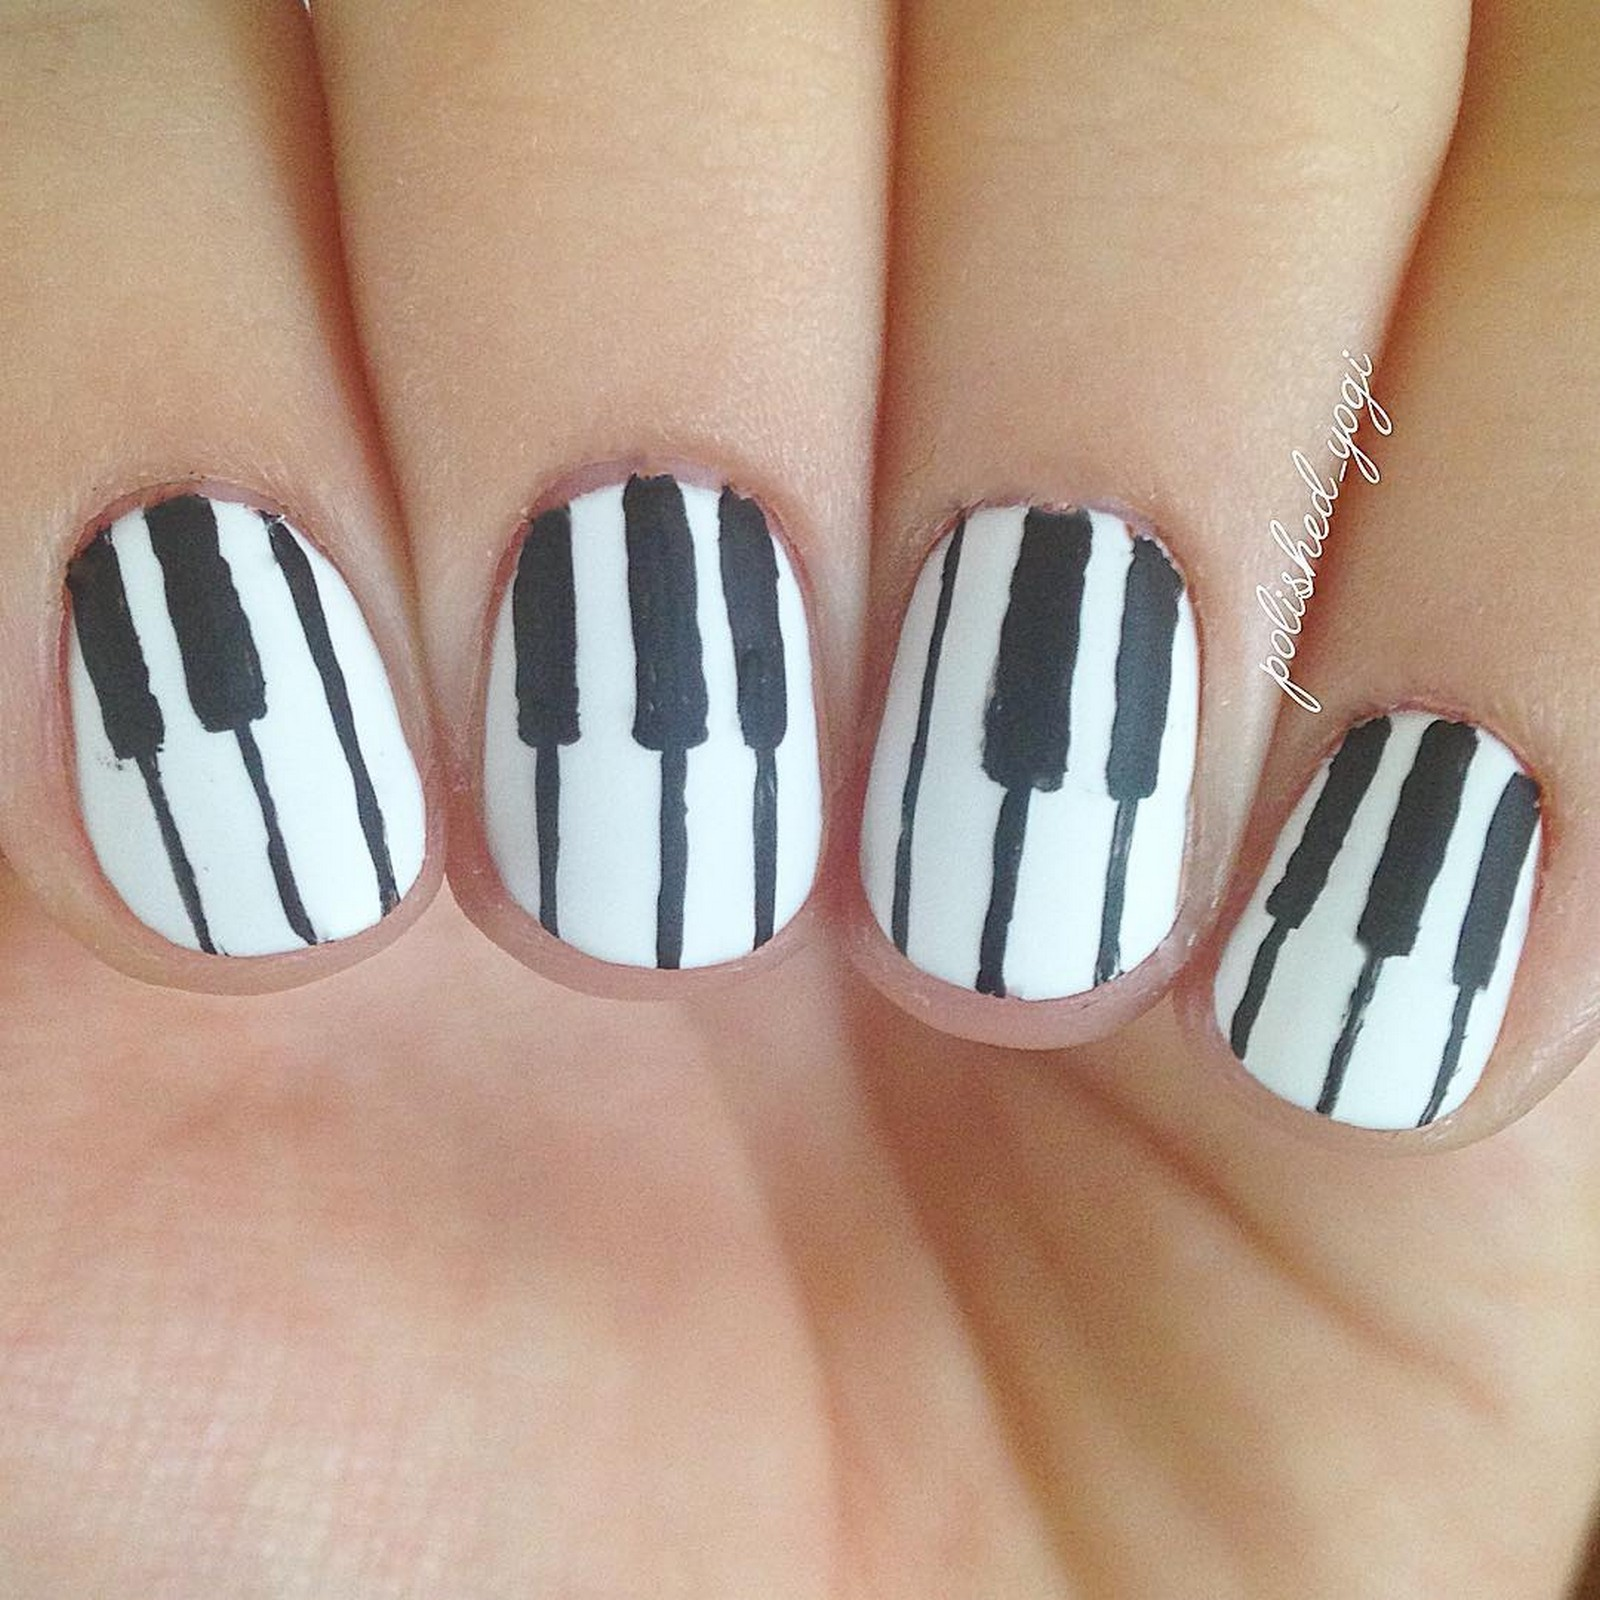 18 Music Nails And Nail Art Designs That Will Make You